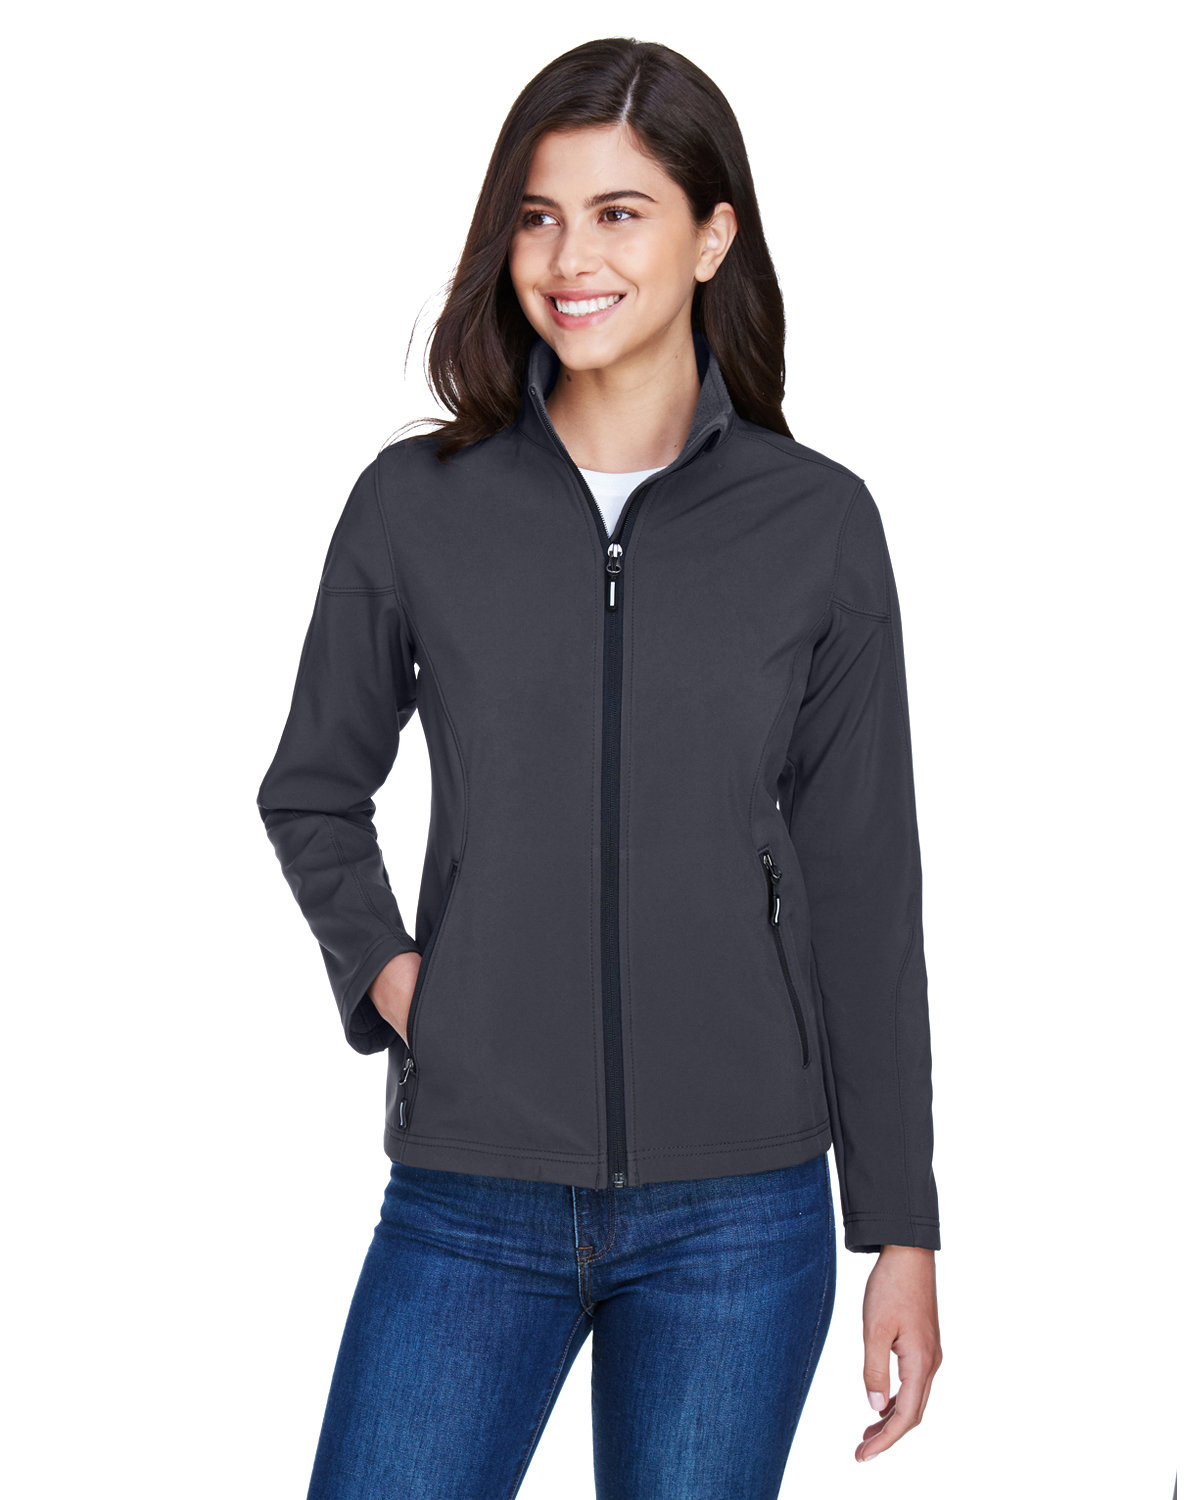 Core 365 Ladies' Cruise Two-Layer Fleece Bonded SoftShell Jacket CARBON